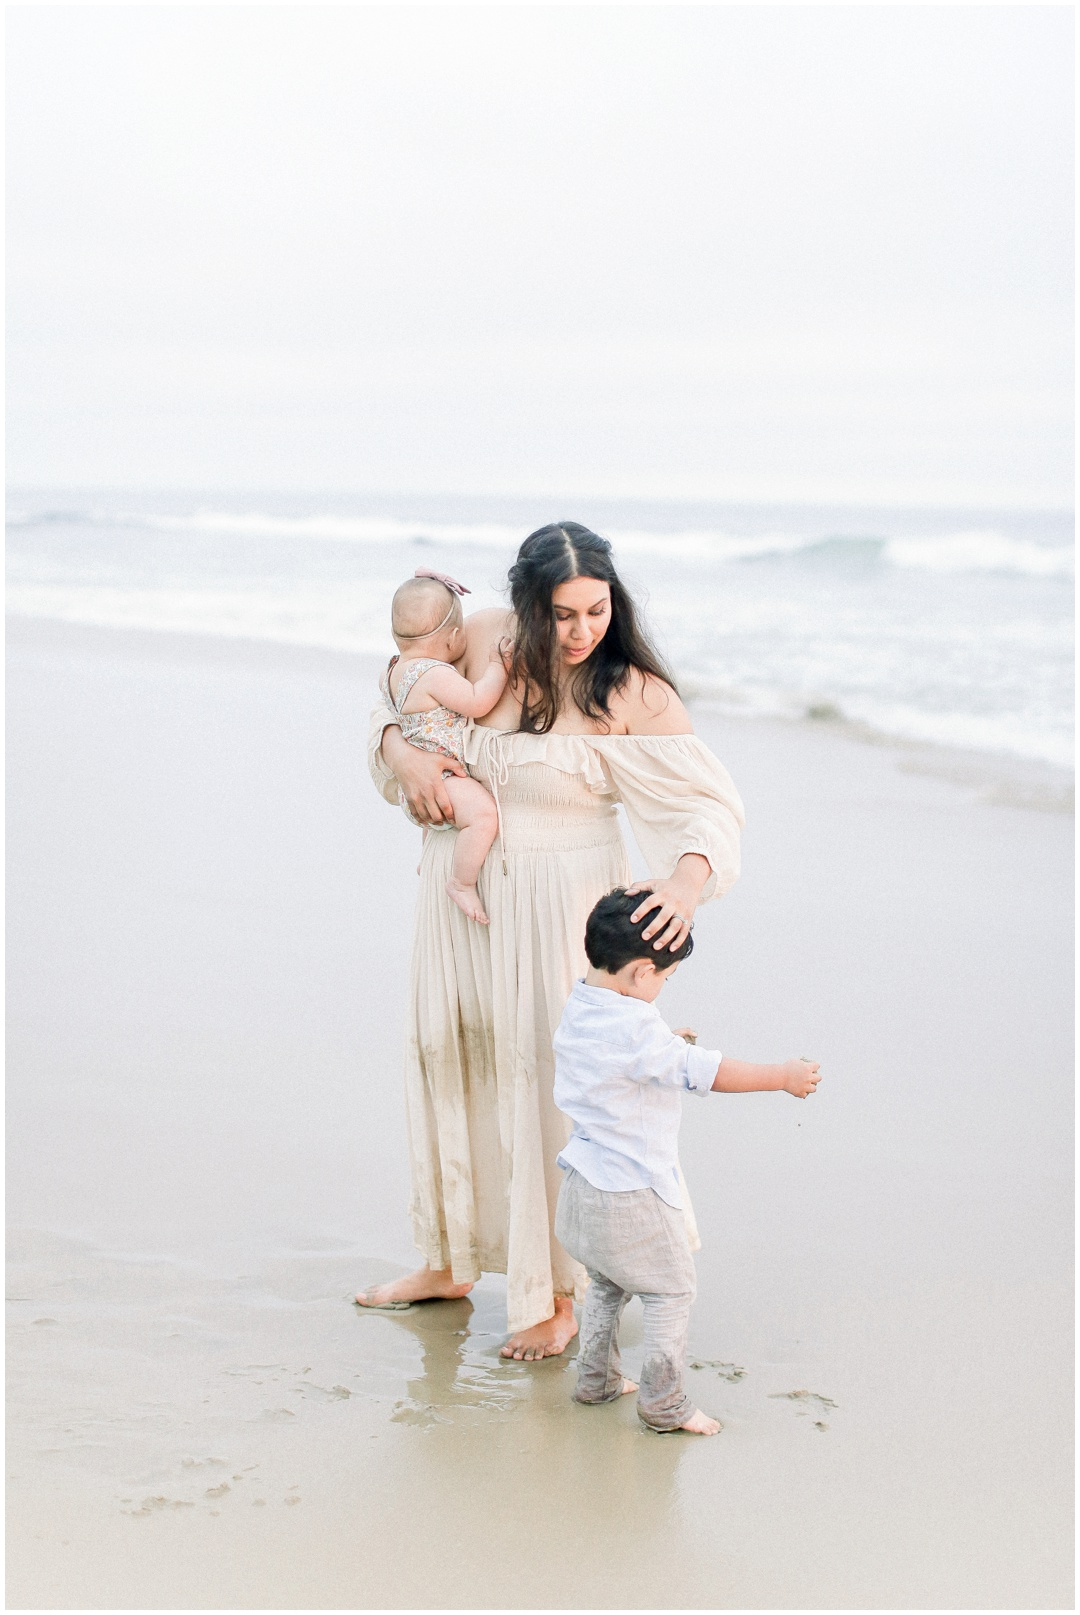 Newport_Beach_Newborn_Light_Airy_Natural_Photographer_Newport_Beach_Photographer_Orange_County_Family_Photographer_Cori_Kleckner_Photography_Huntington_Beach_Photographer_Family_OC_Newborn_Natalie_Nunez_Thomas_Nunez_Natalie_Roca_Rosh_Nunez_Family_3575.jpg